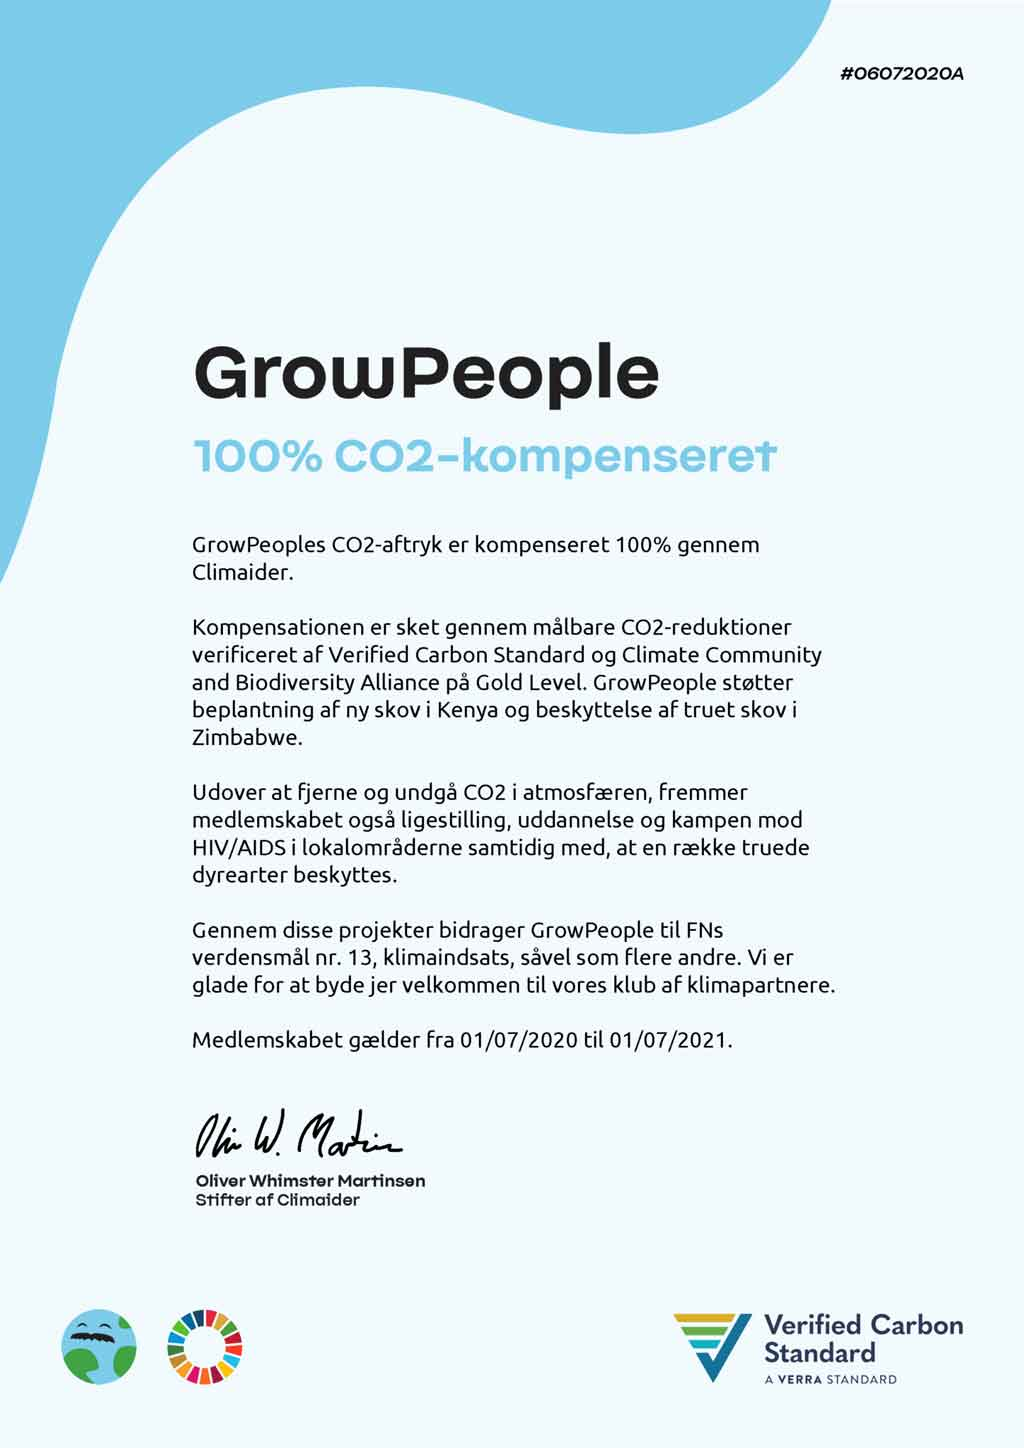 GrowPeople Certifikat Climaider